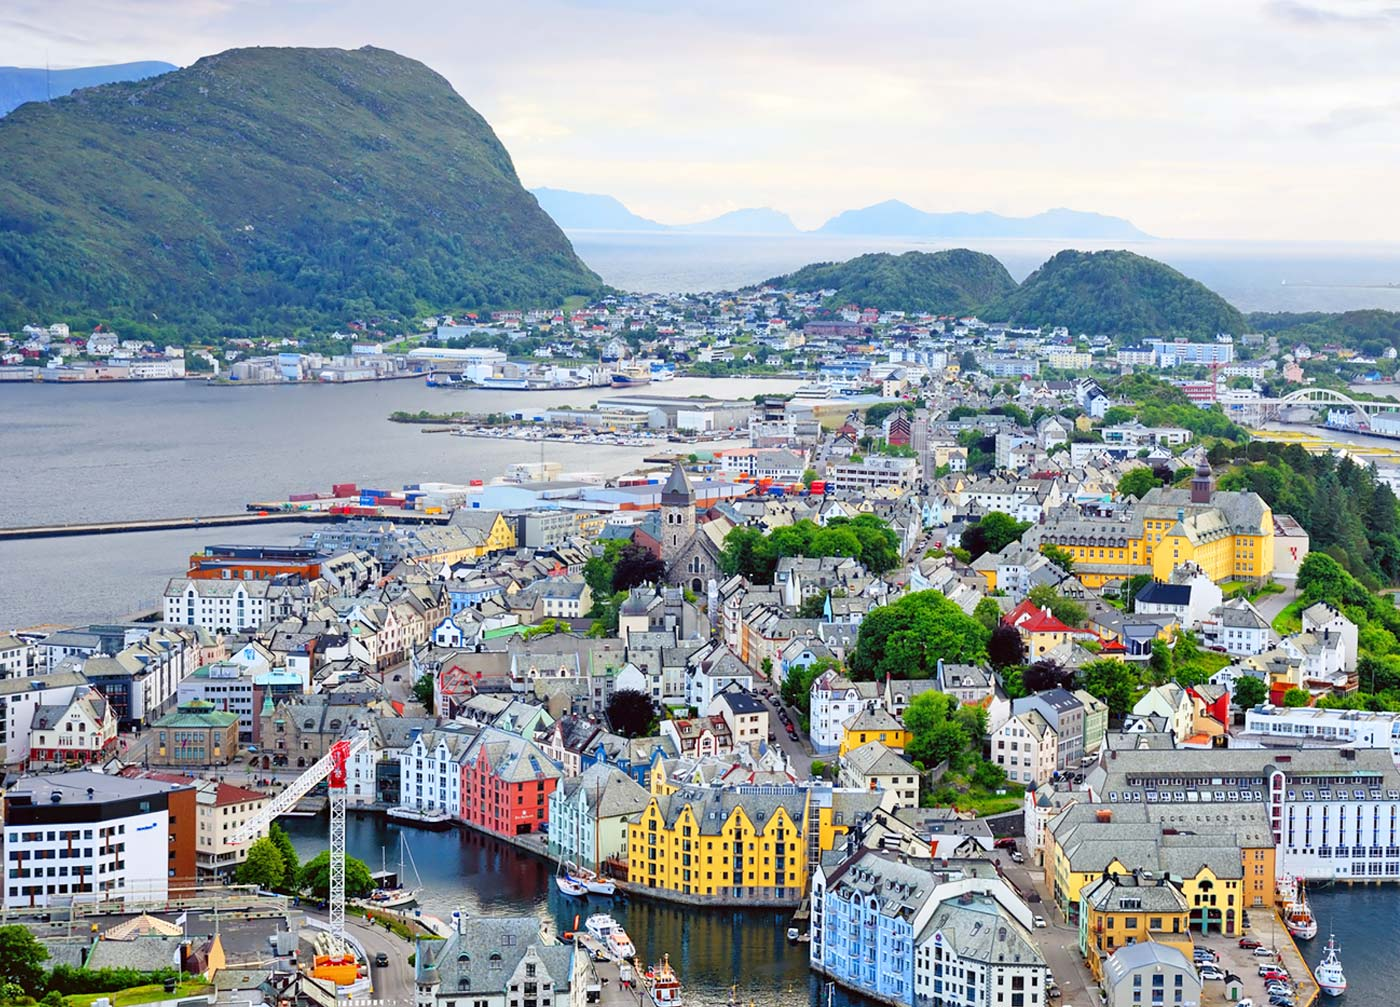 arial view of alesund, norway shows vibrant buildings in between the ocean and beautiful large mountains